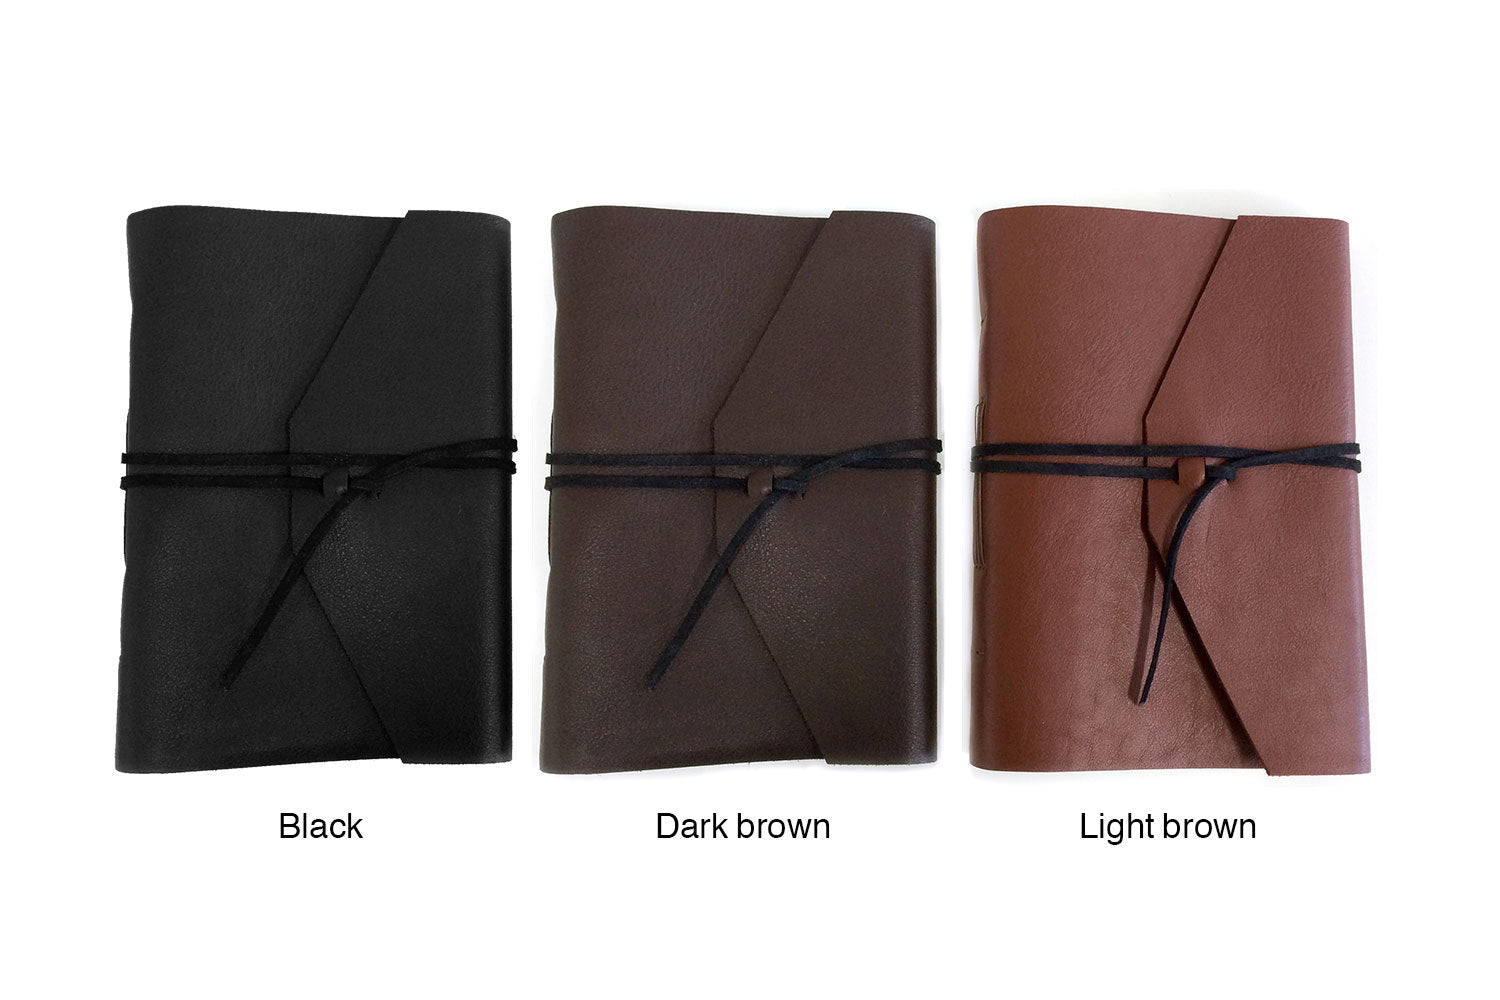 Bookbinding kit from Bookshell in black leather, light brown leather and dark brown leather